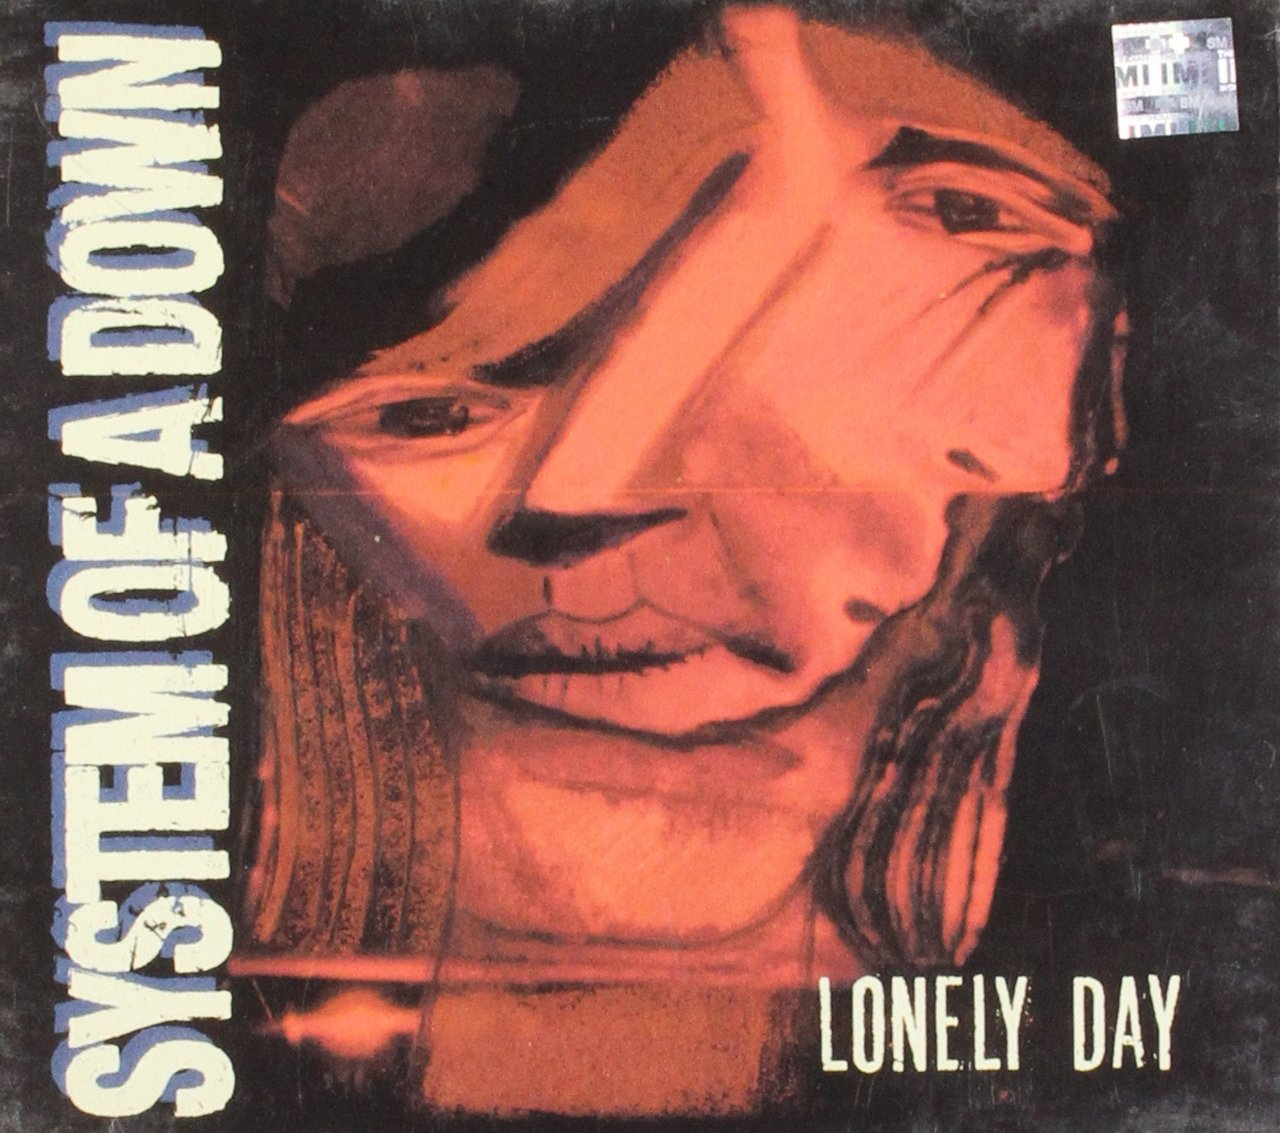 System of a Down - Lonely Day - Amazon.com Music